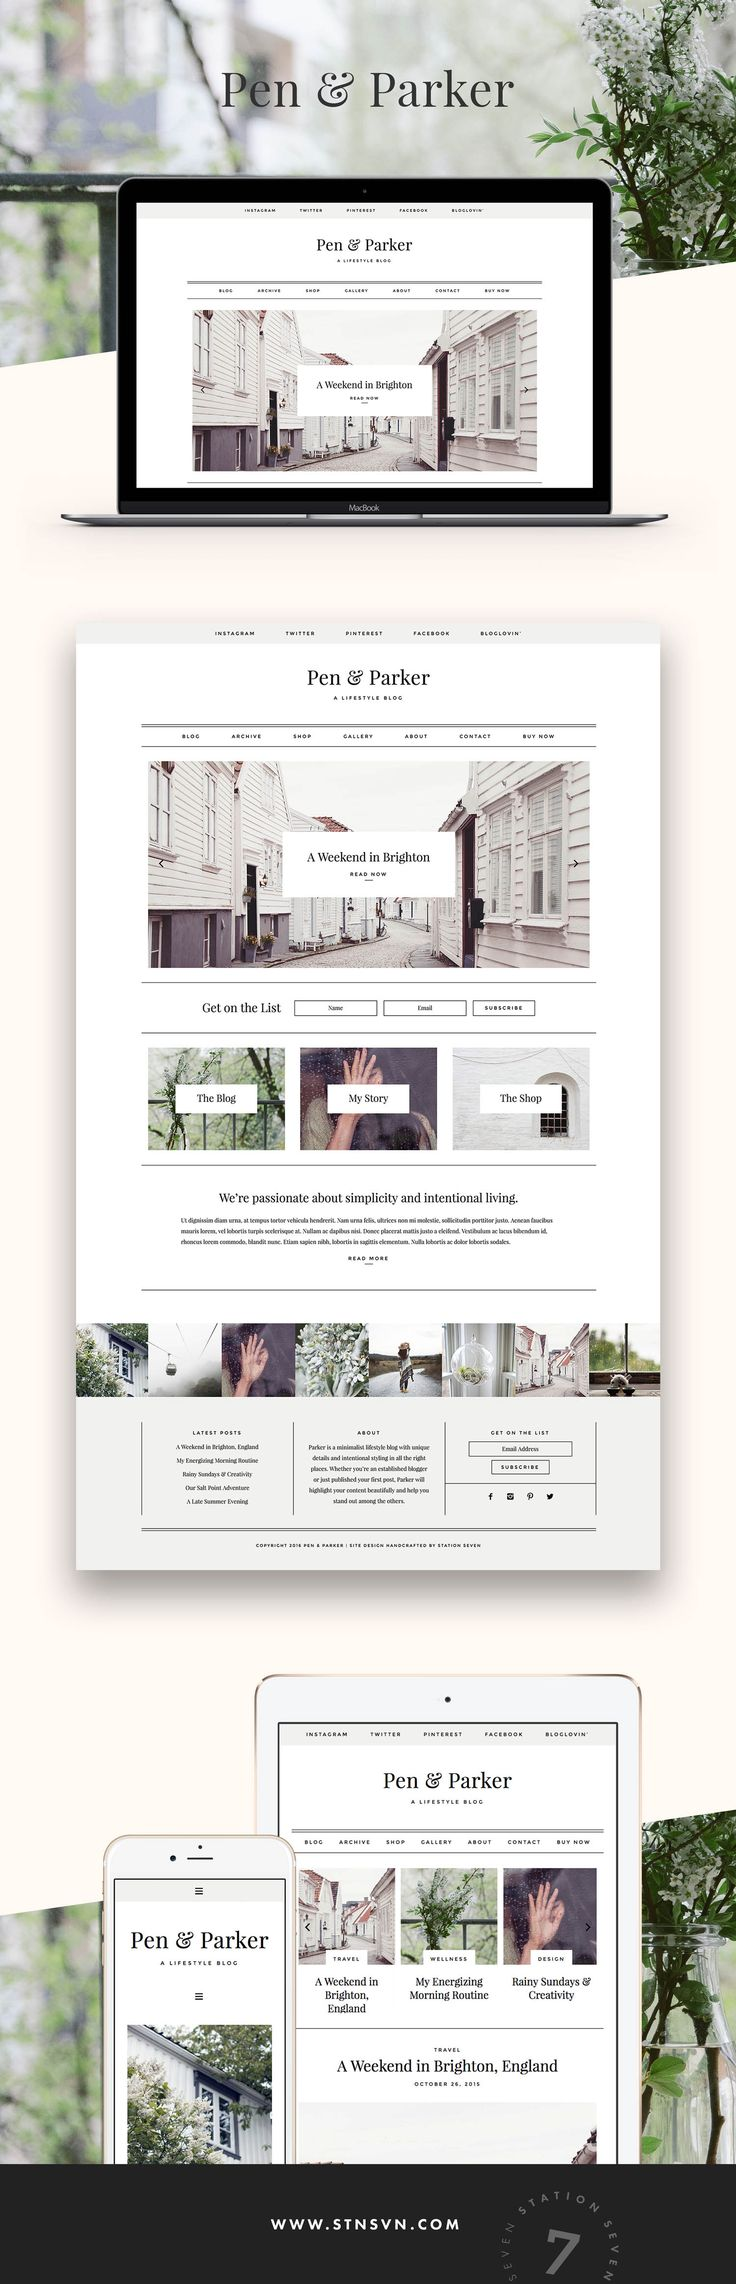 Say hello to Parker, a WordPress theme from Station Seven with unique details and intentional styling in all the right places. https:∕∕stnsvn.com #webdesign